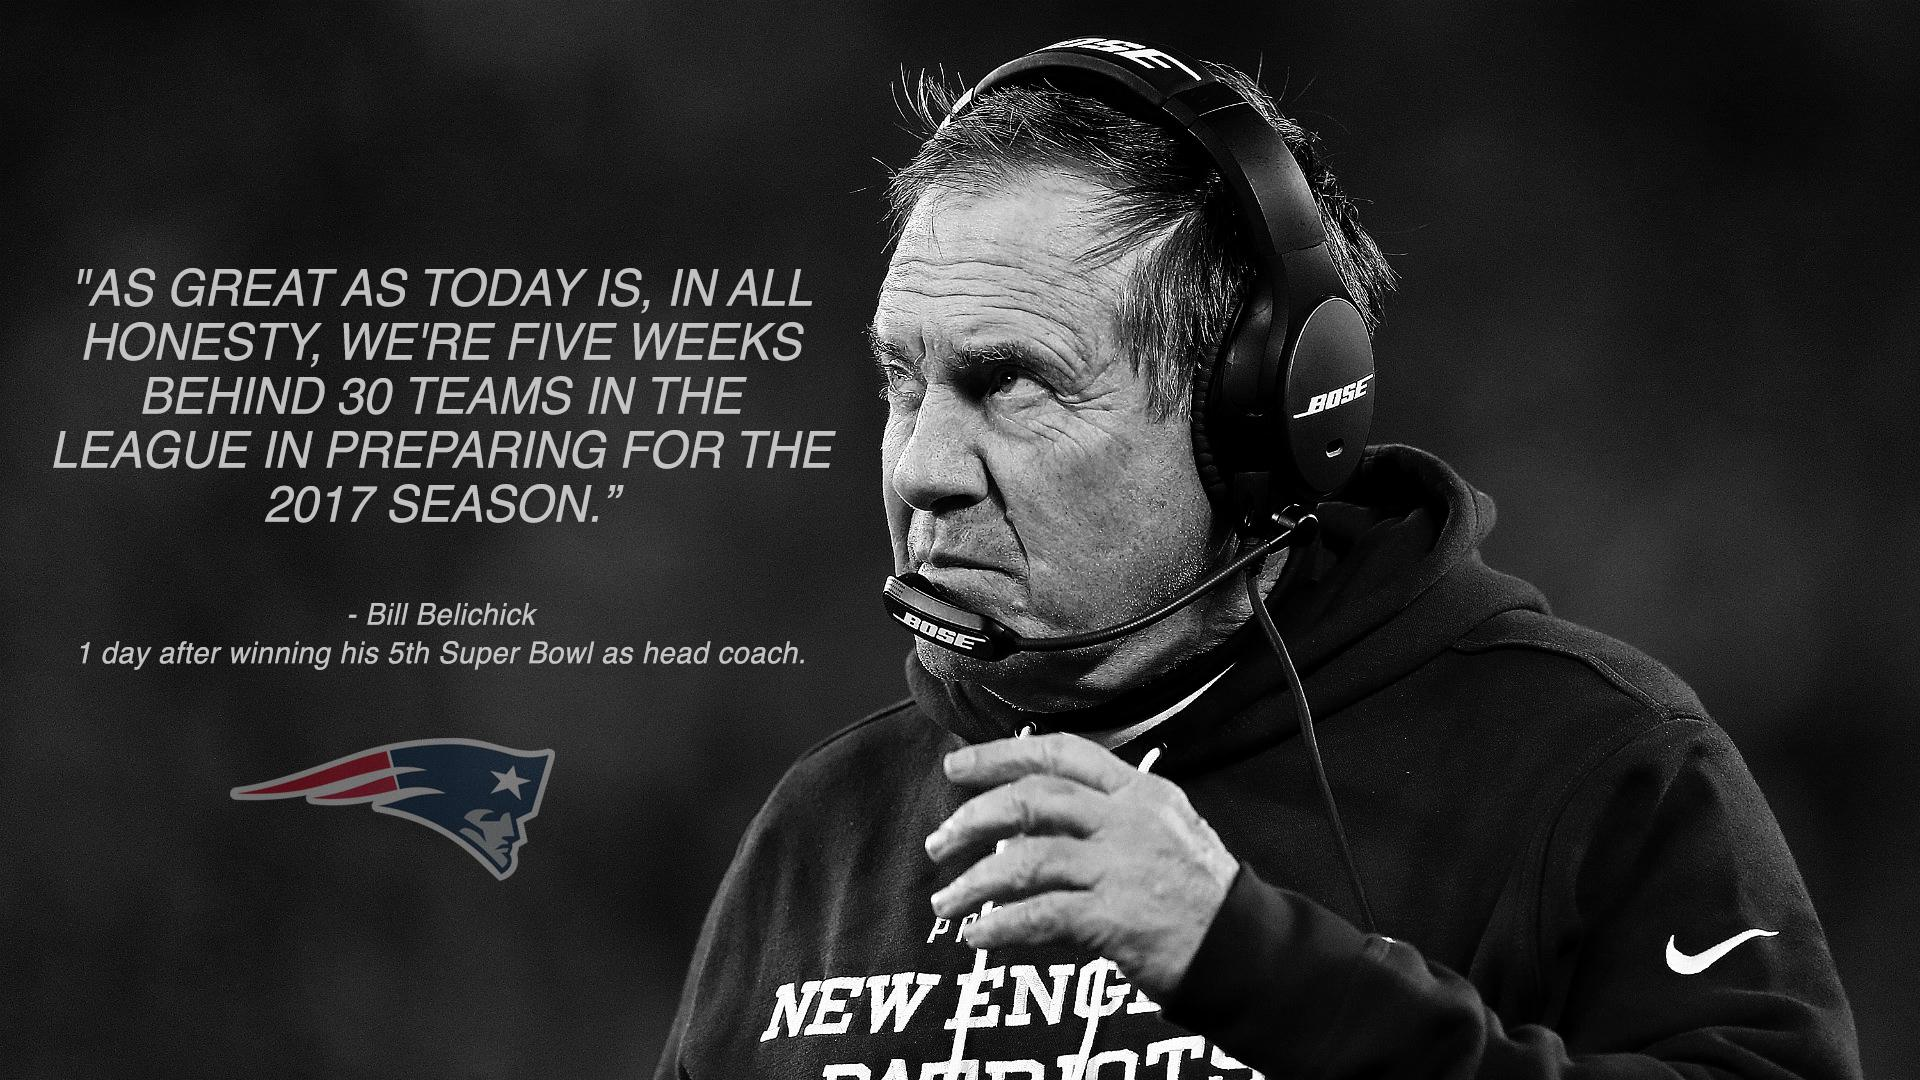 [image] Superbowl Inspiration from coach belichick's press Conference today.